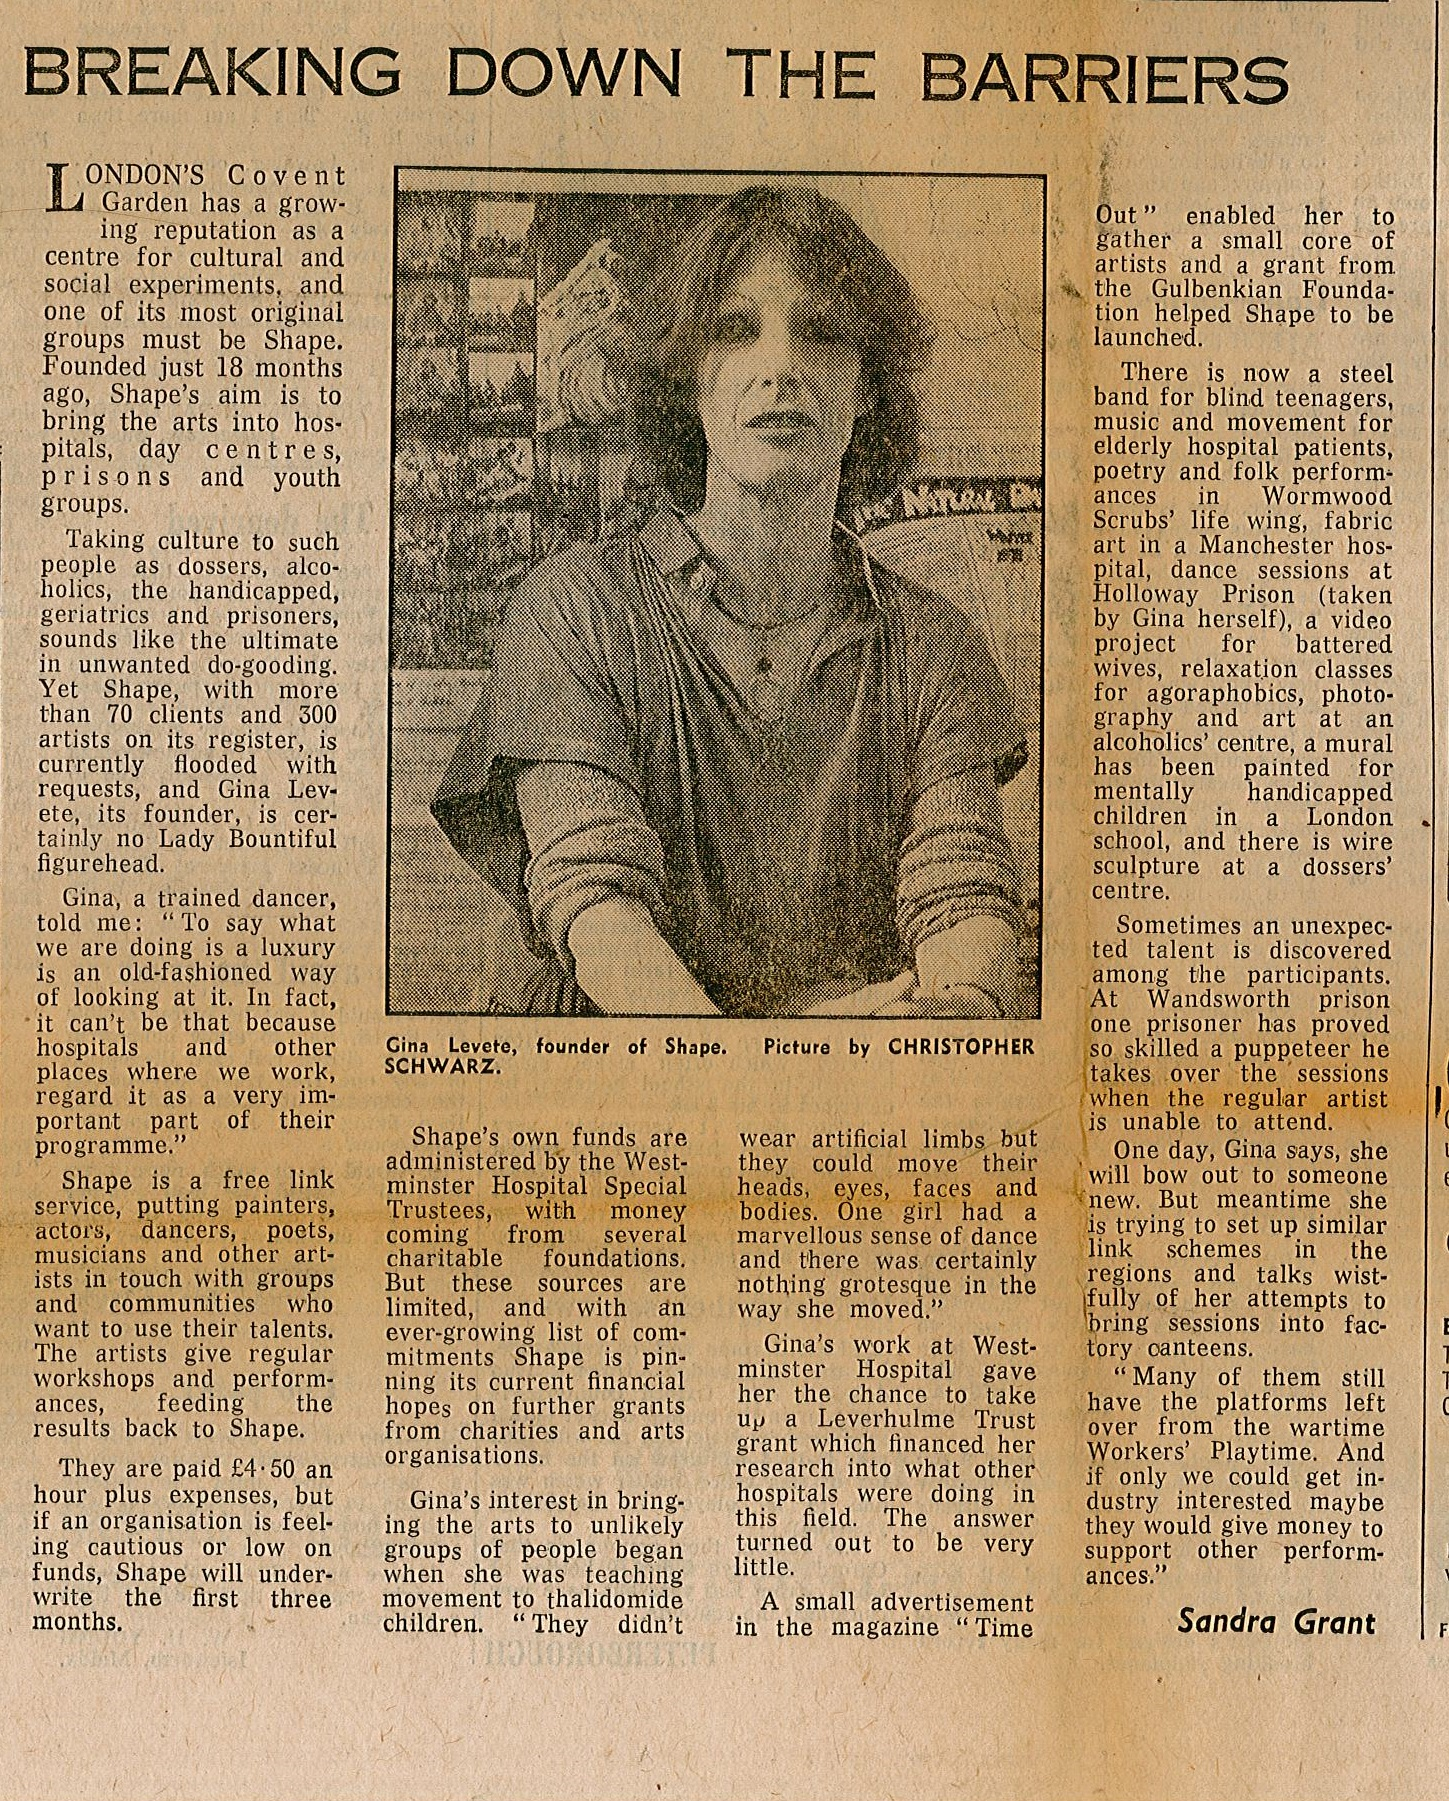 cutting from the daily telegraph, 8 June 1978, featuring Shapes founder, Gina Levete